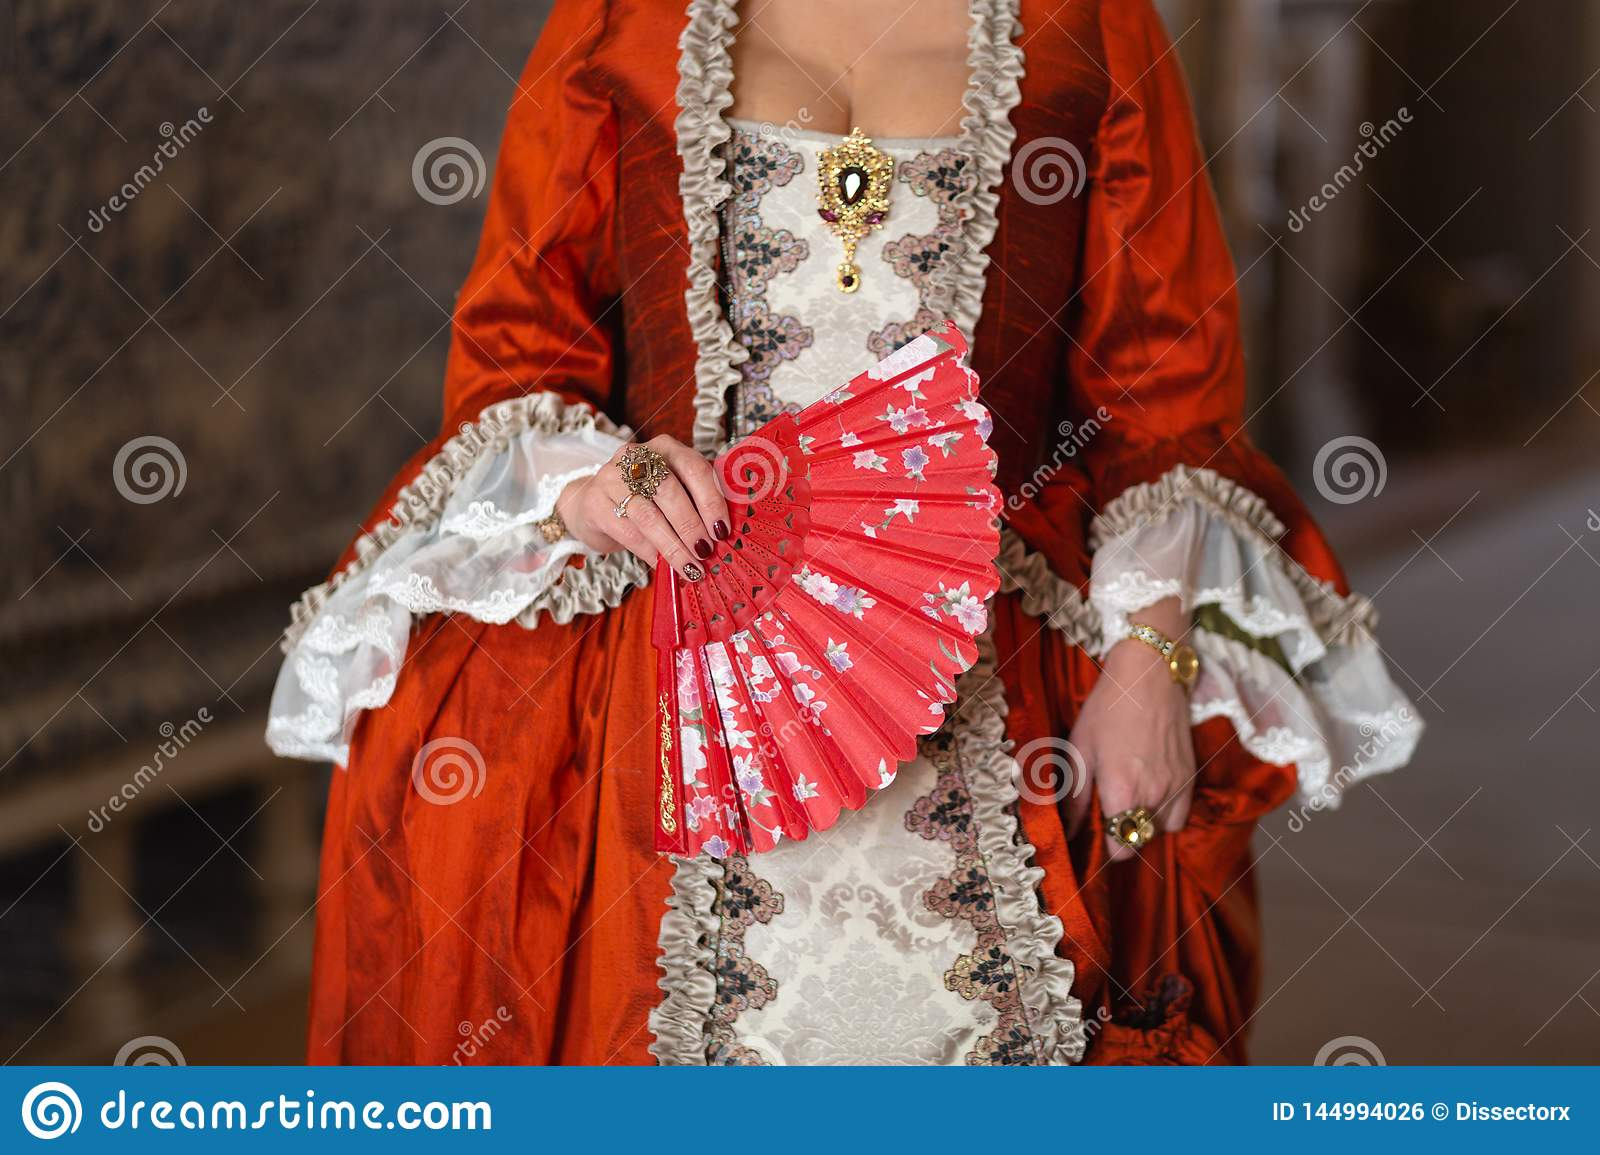 Retro style royal medieval ball - Majestic palace with gorgeous people dressed in king and queen`s friends dresses with